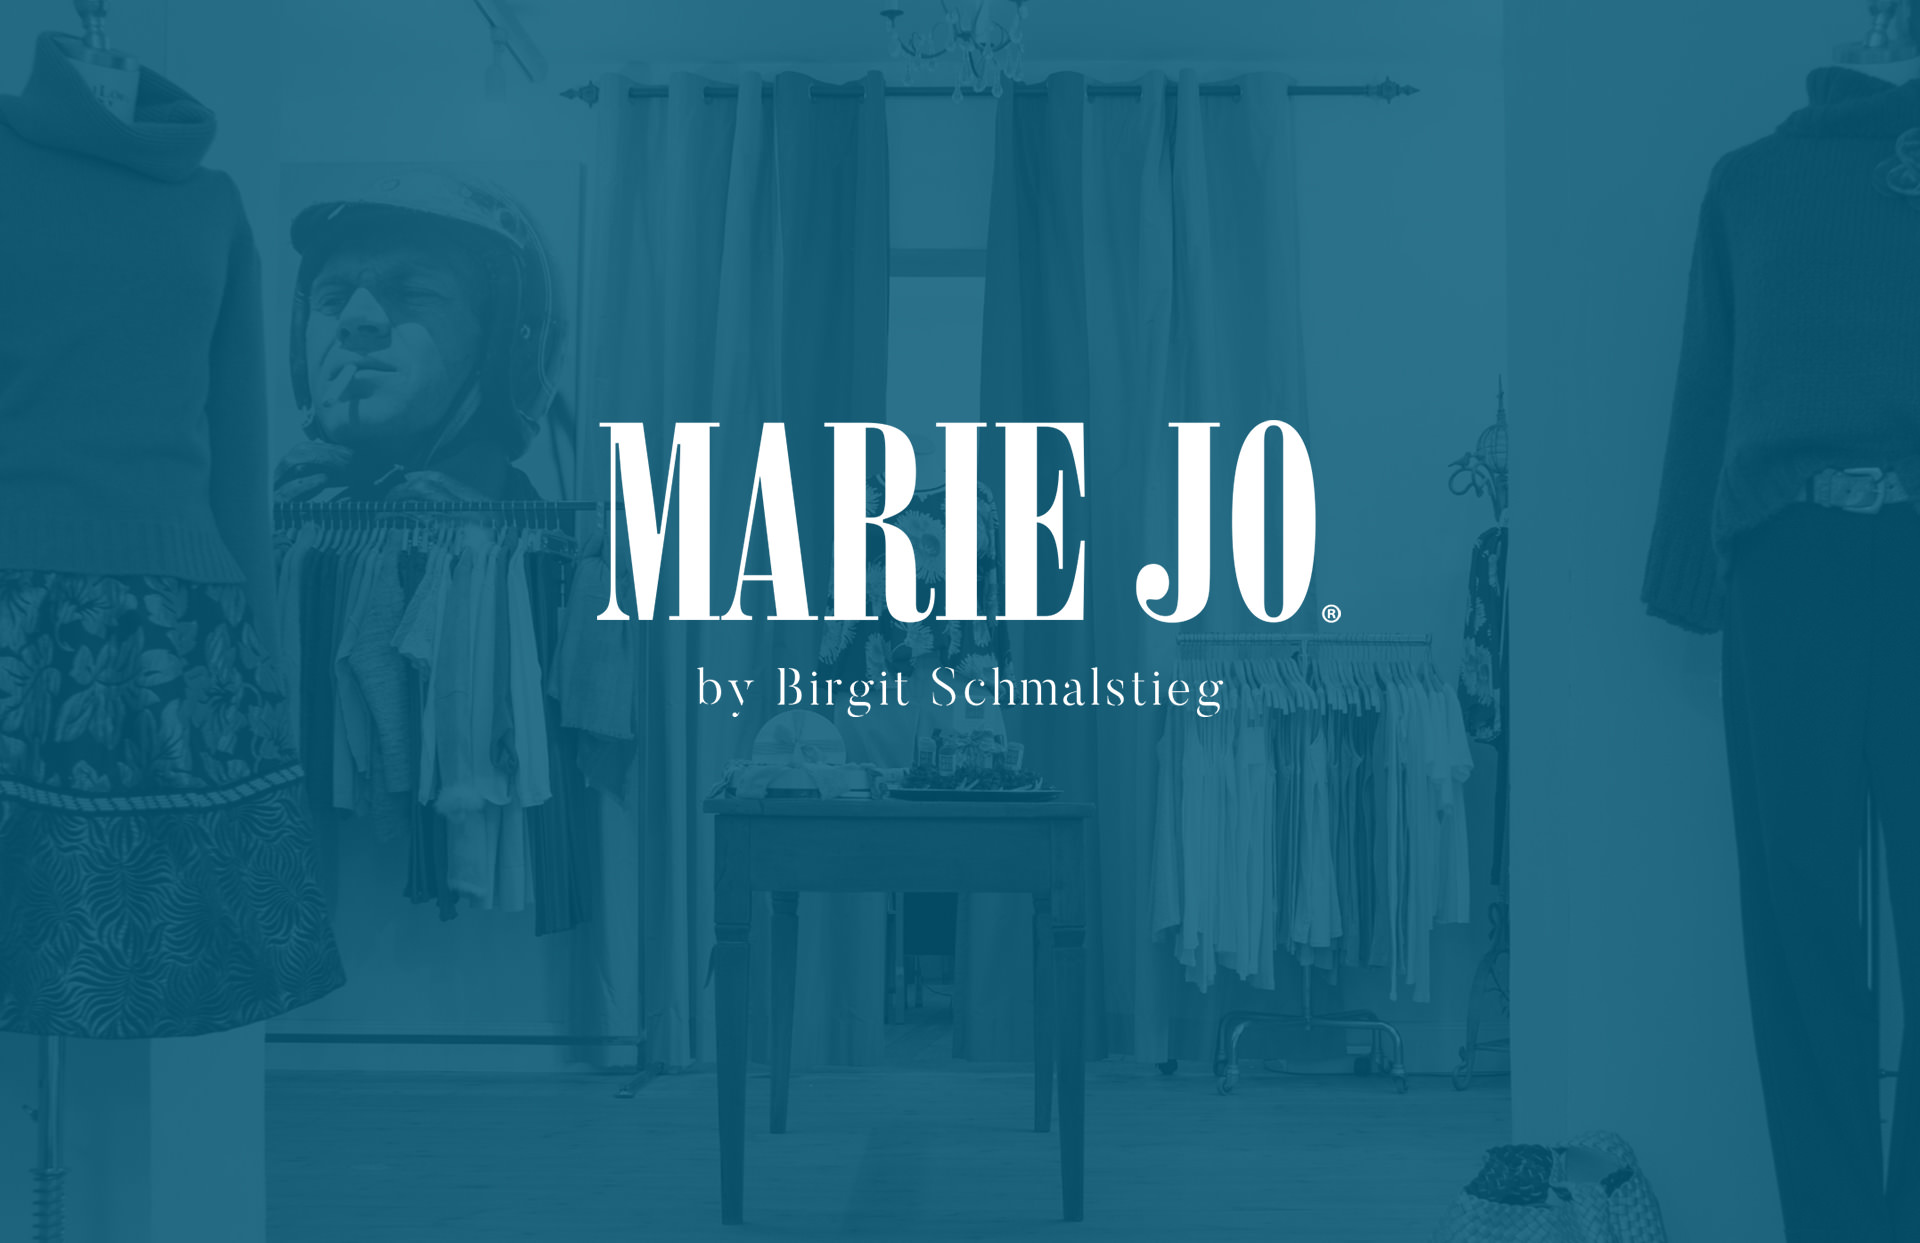 Schmalstieg Boutique Fashion Mode Design Purpur Marie Jo Marketing Kampagne Campaign Website Launch Label Marke Birgit LAKE5 Consulting GmbH Hannover Germany